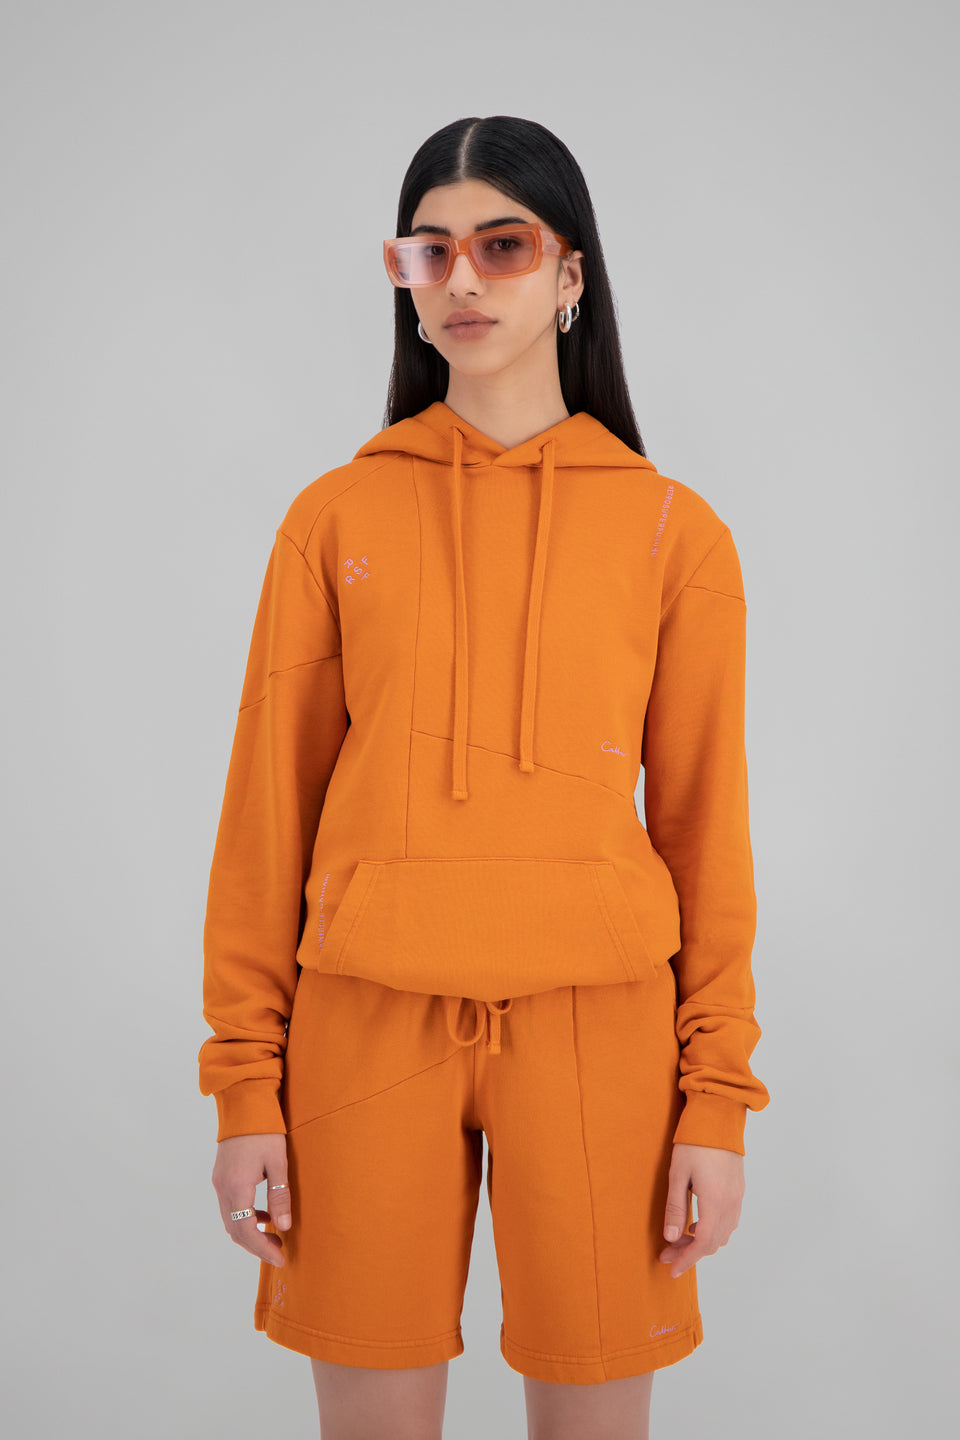 RSFxDC Decontructed Hoodie Rusty Orange